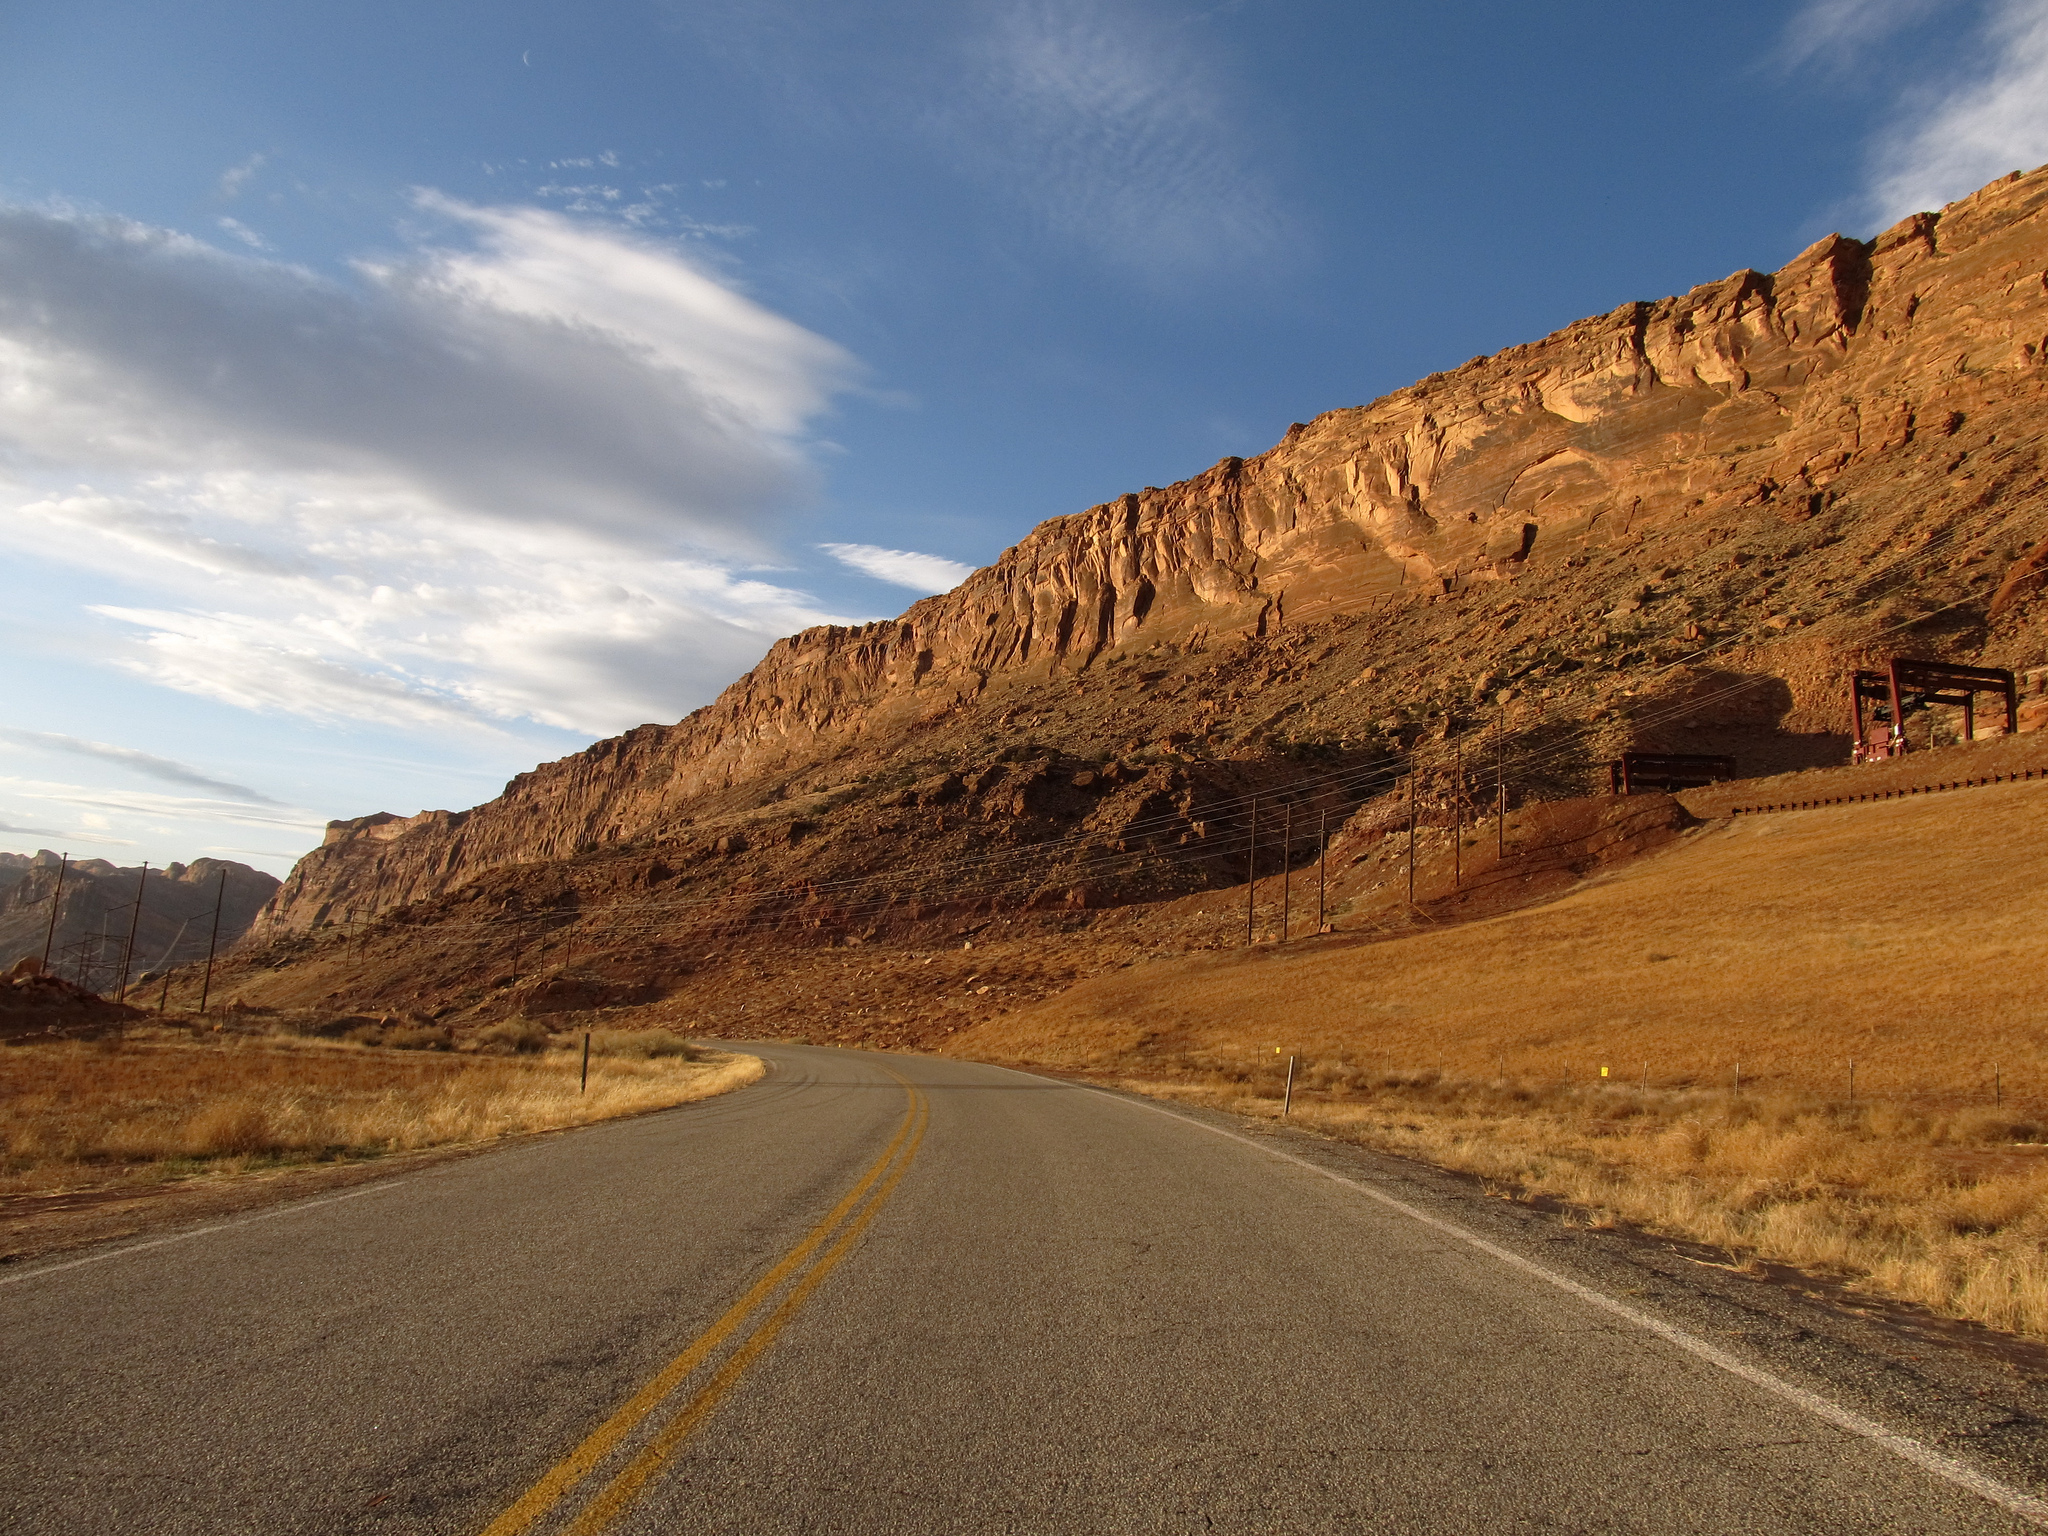 Potash Road, Near Moab, Utah by Ken Lund, on Flickr